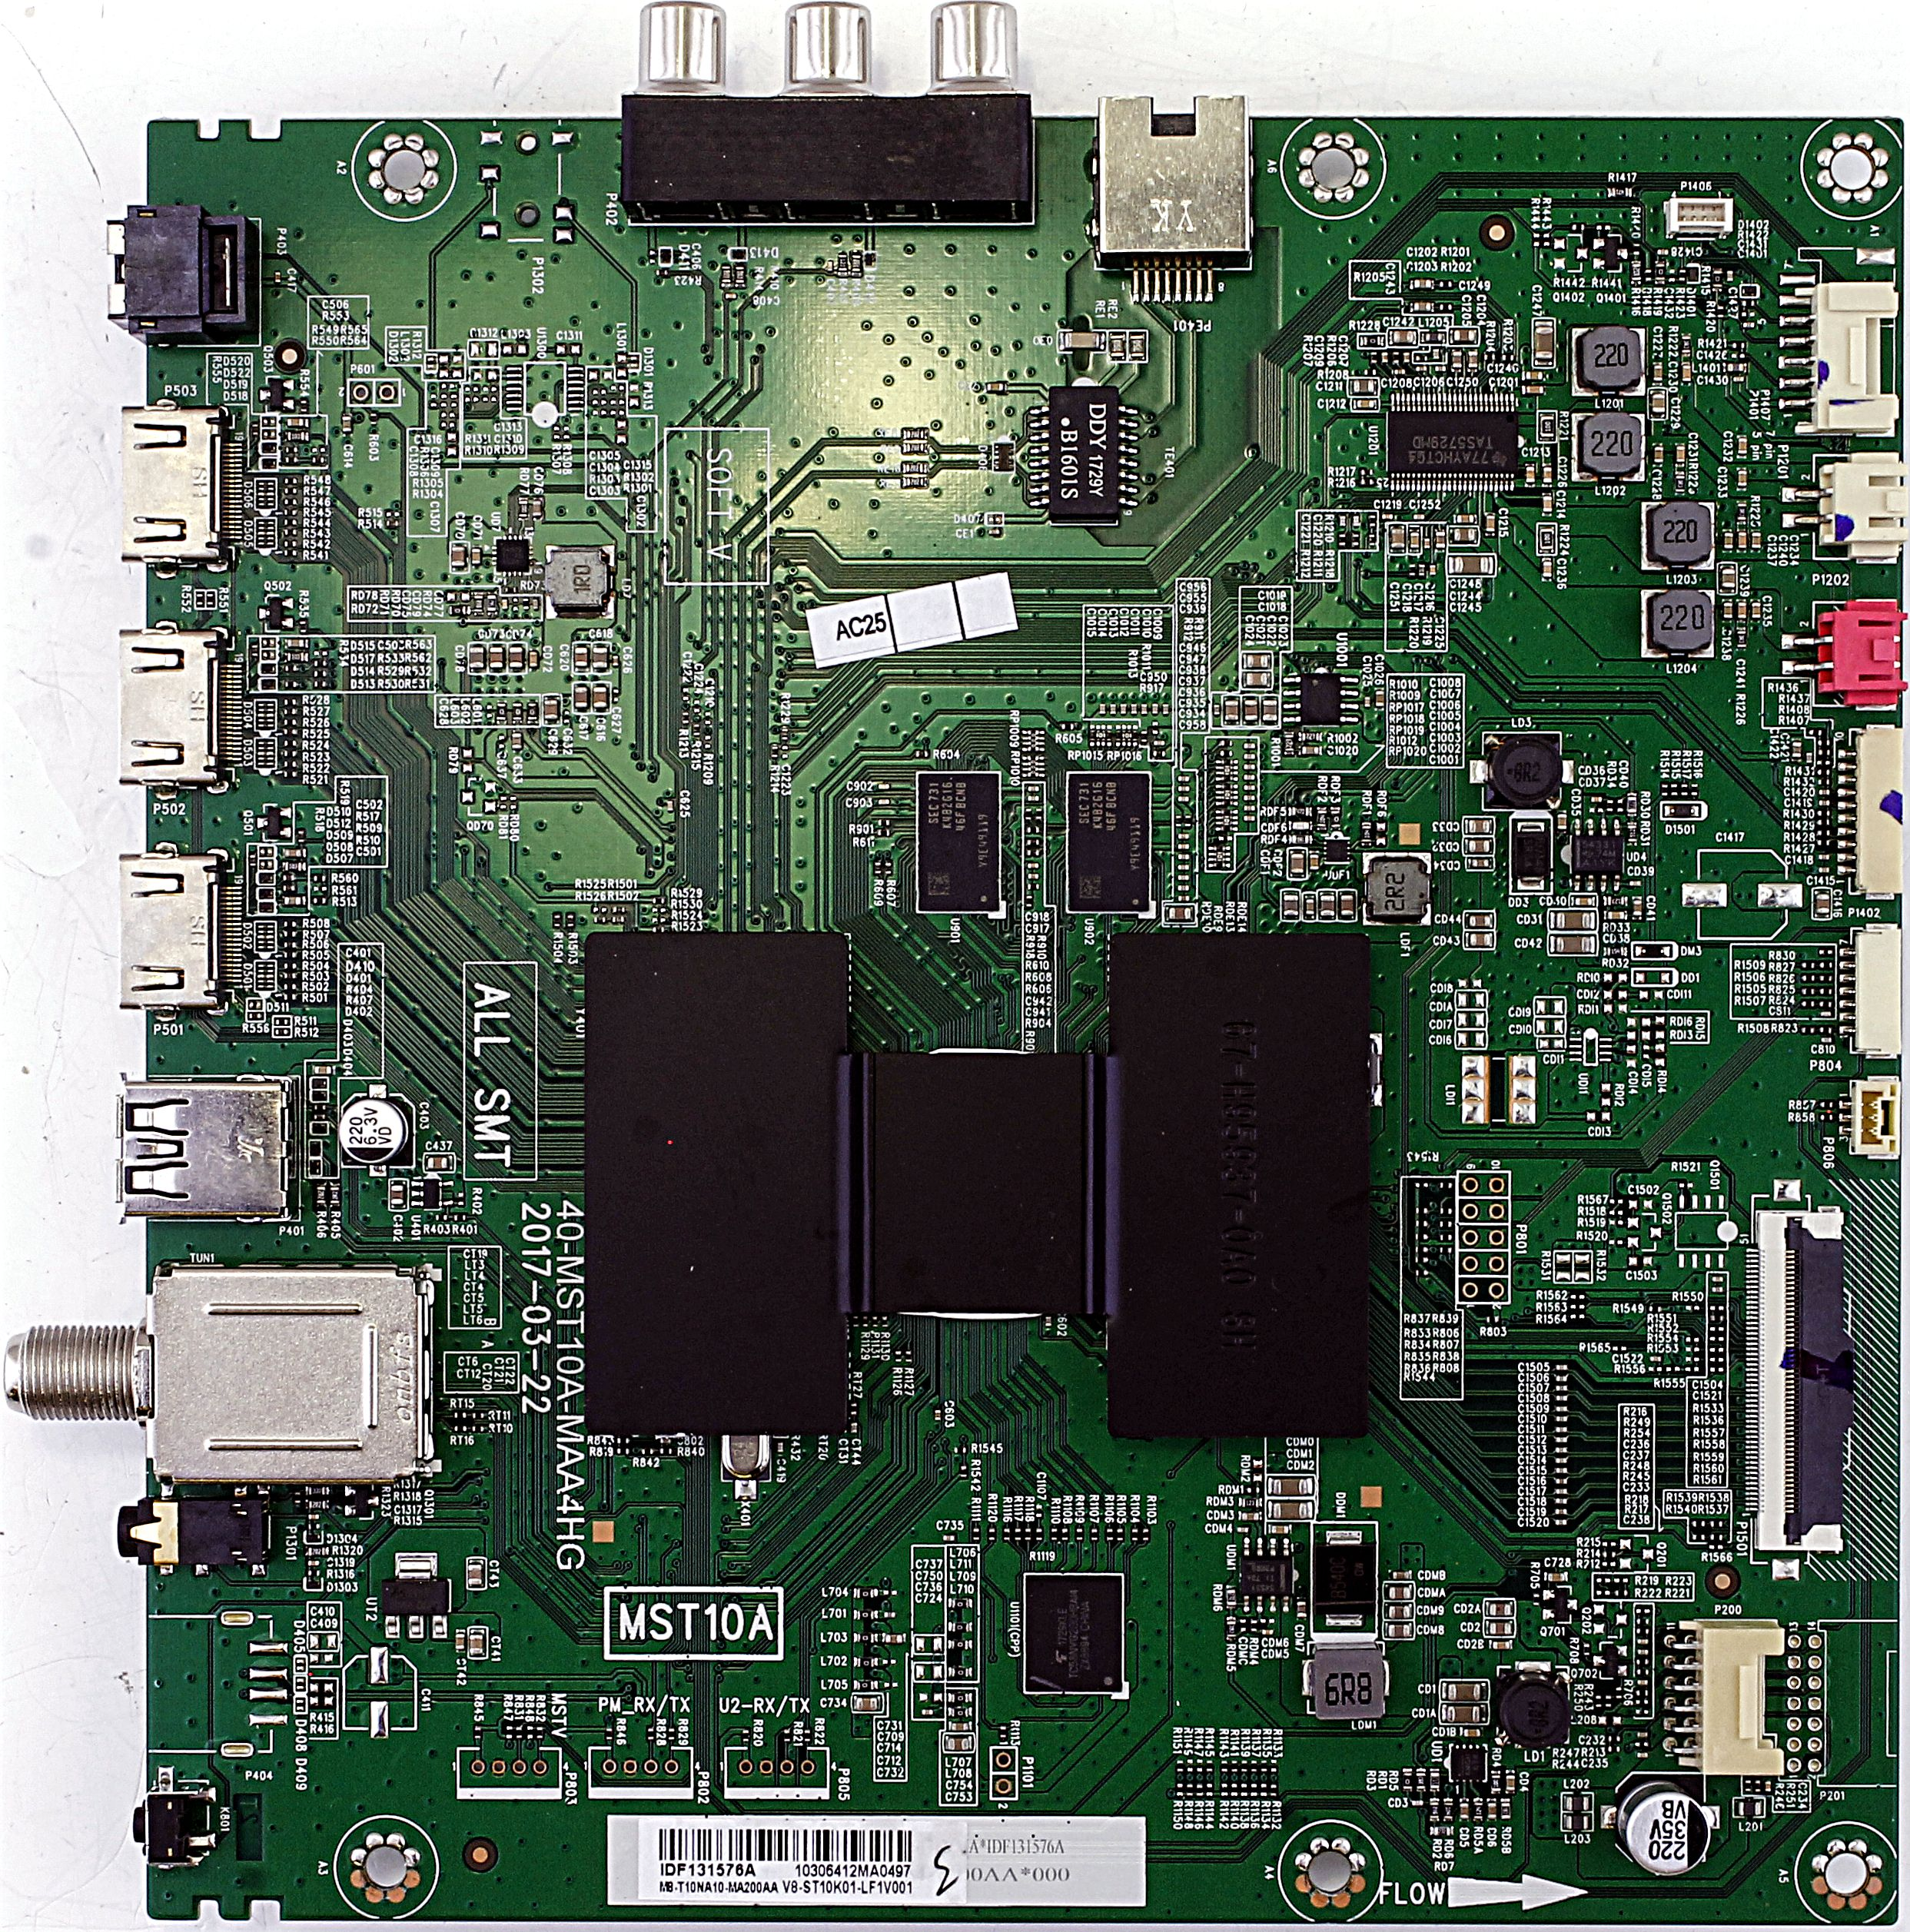 X490187 Hitachi main board for TV model 60R70